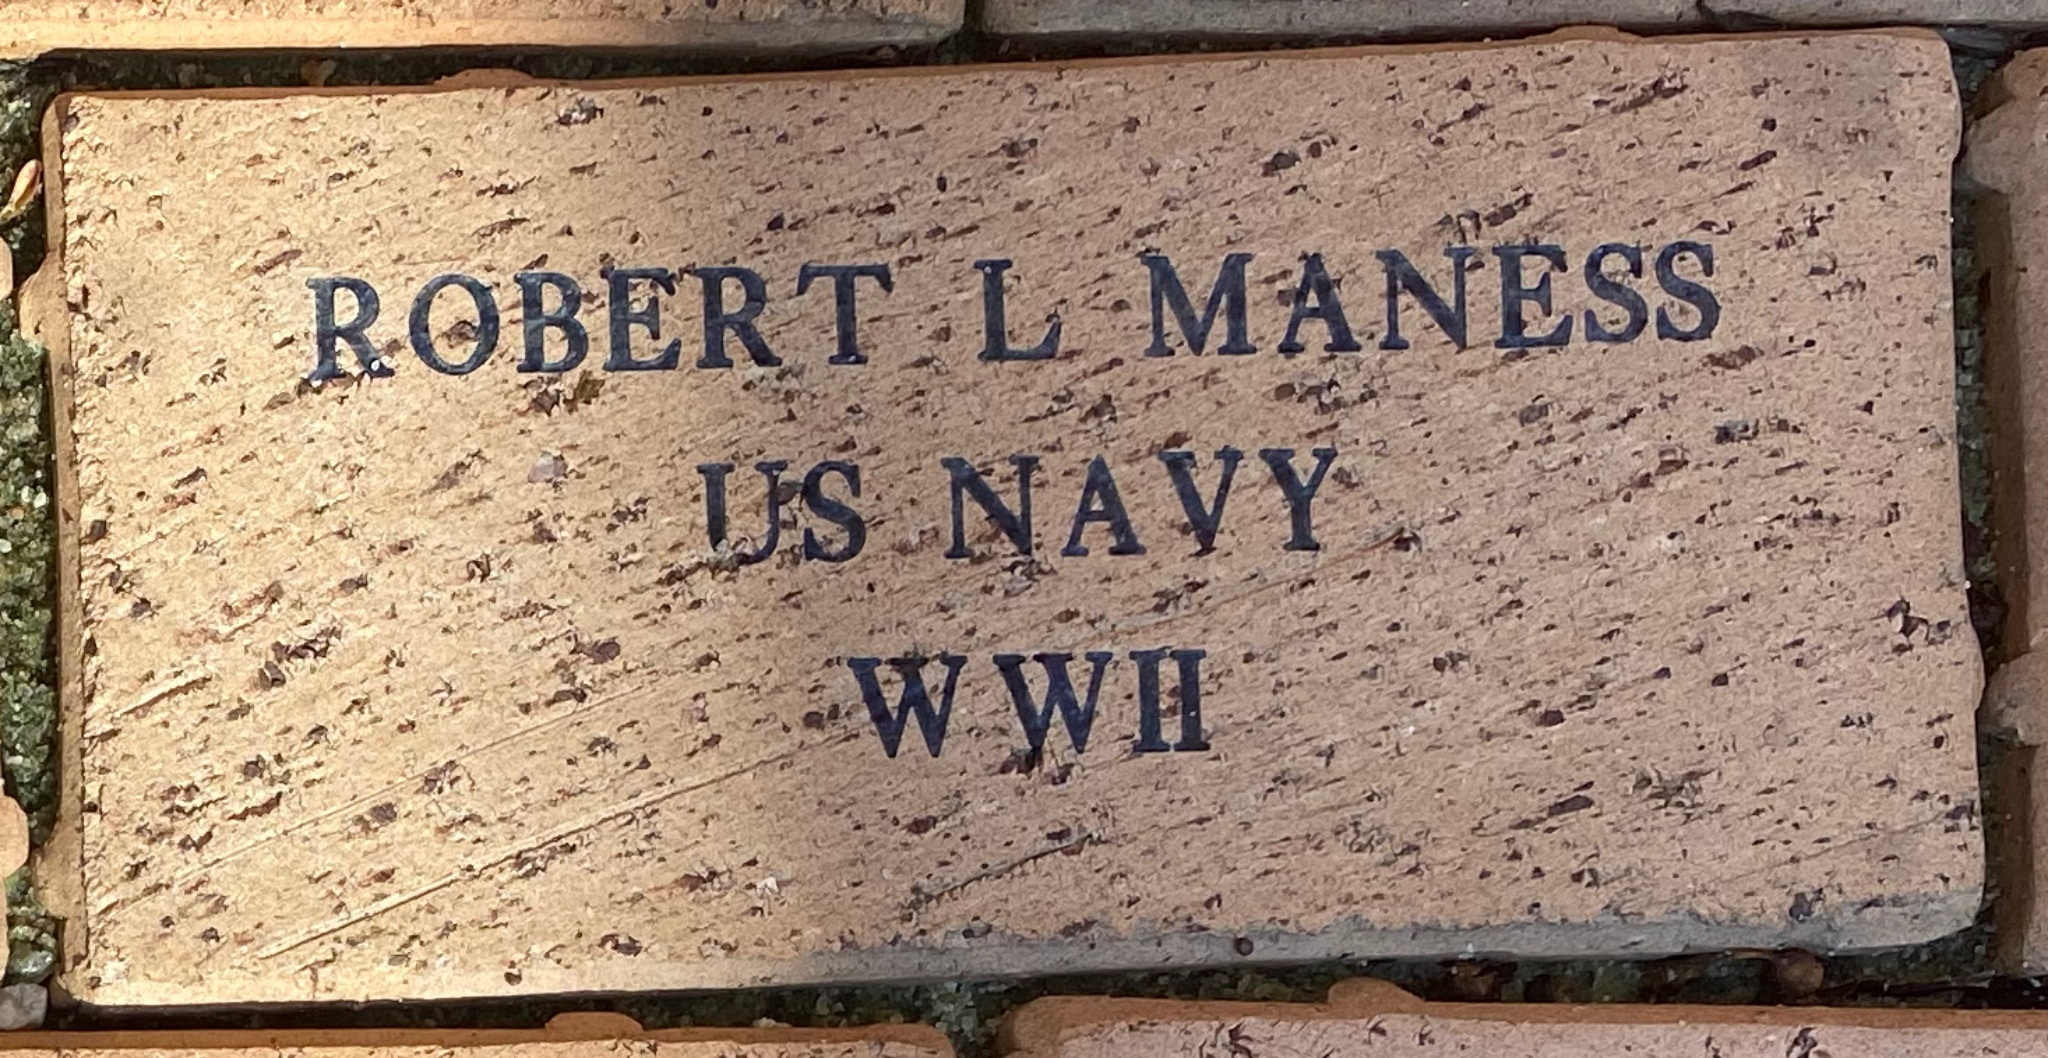 ROBERT L. MANESS US NAVY WWII